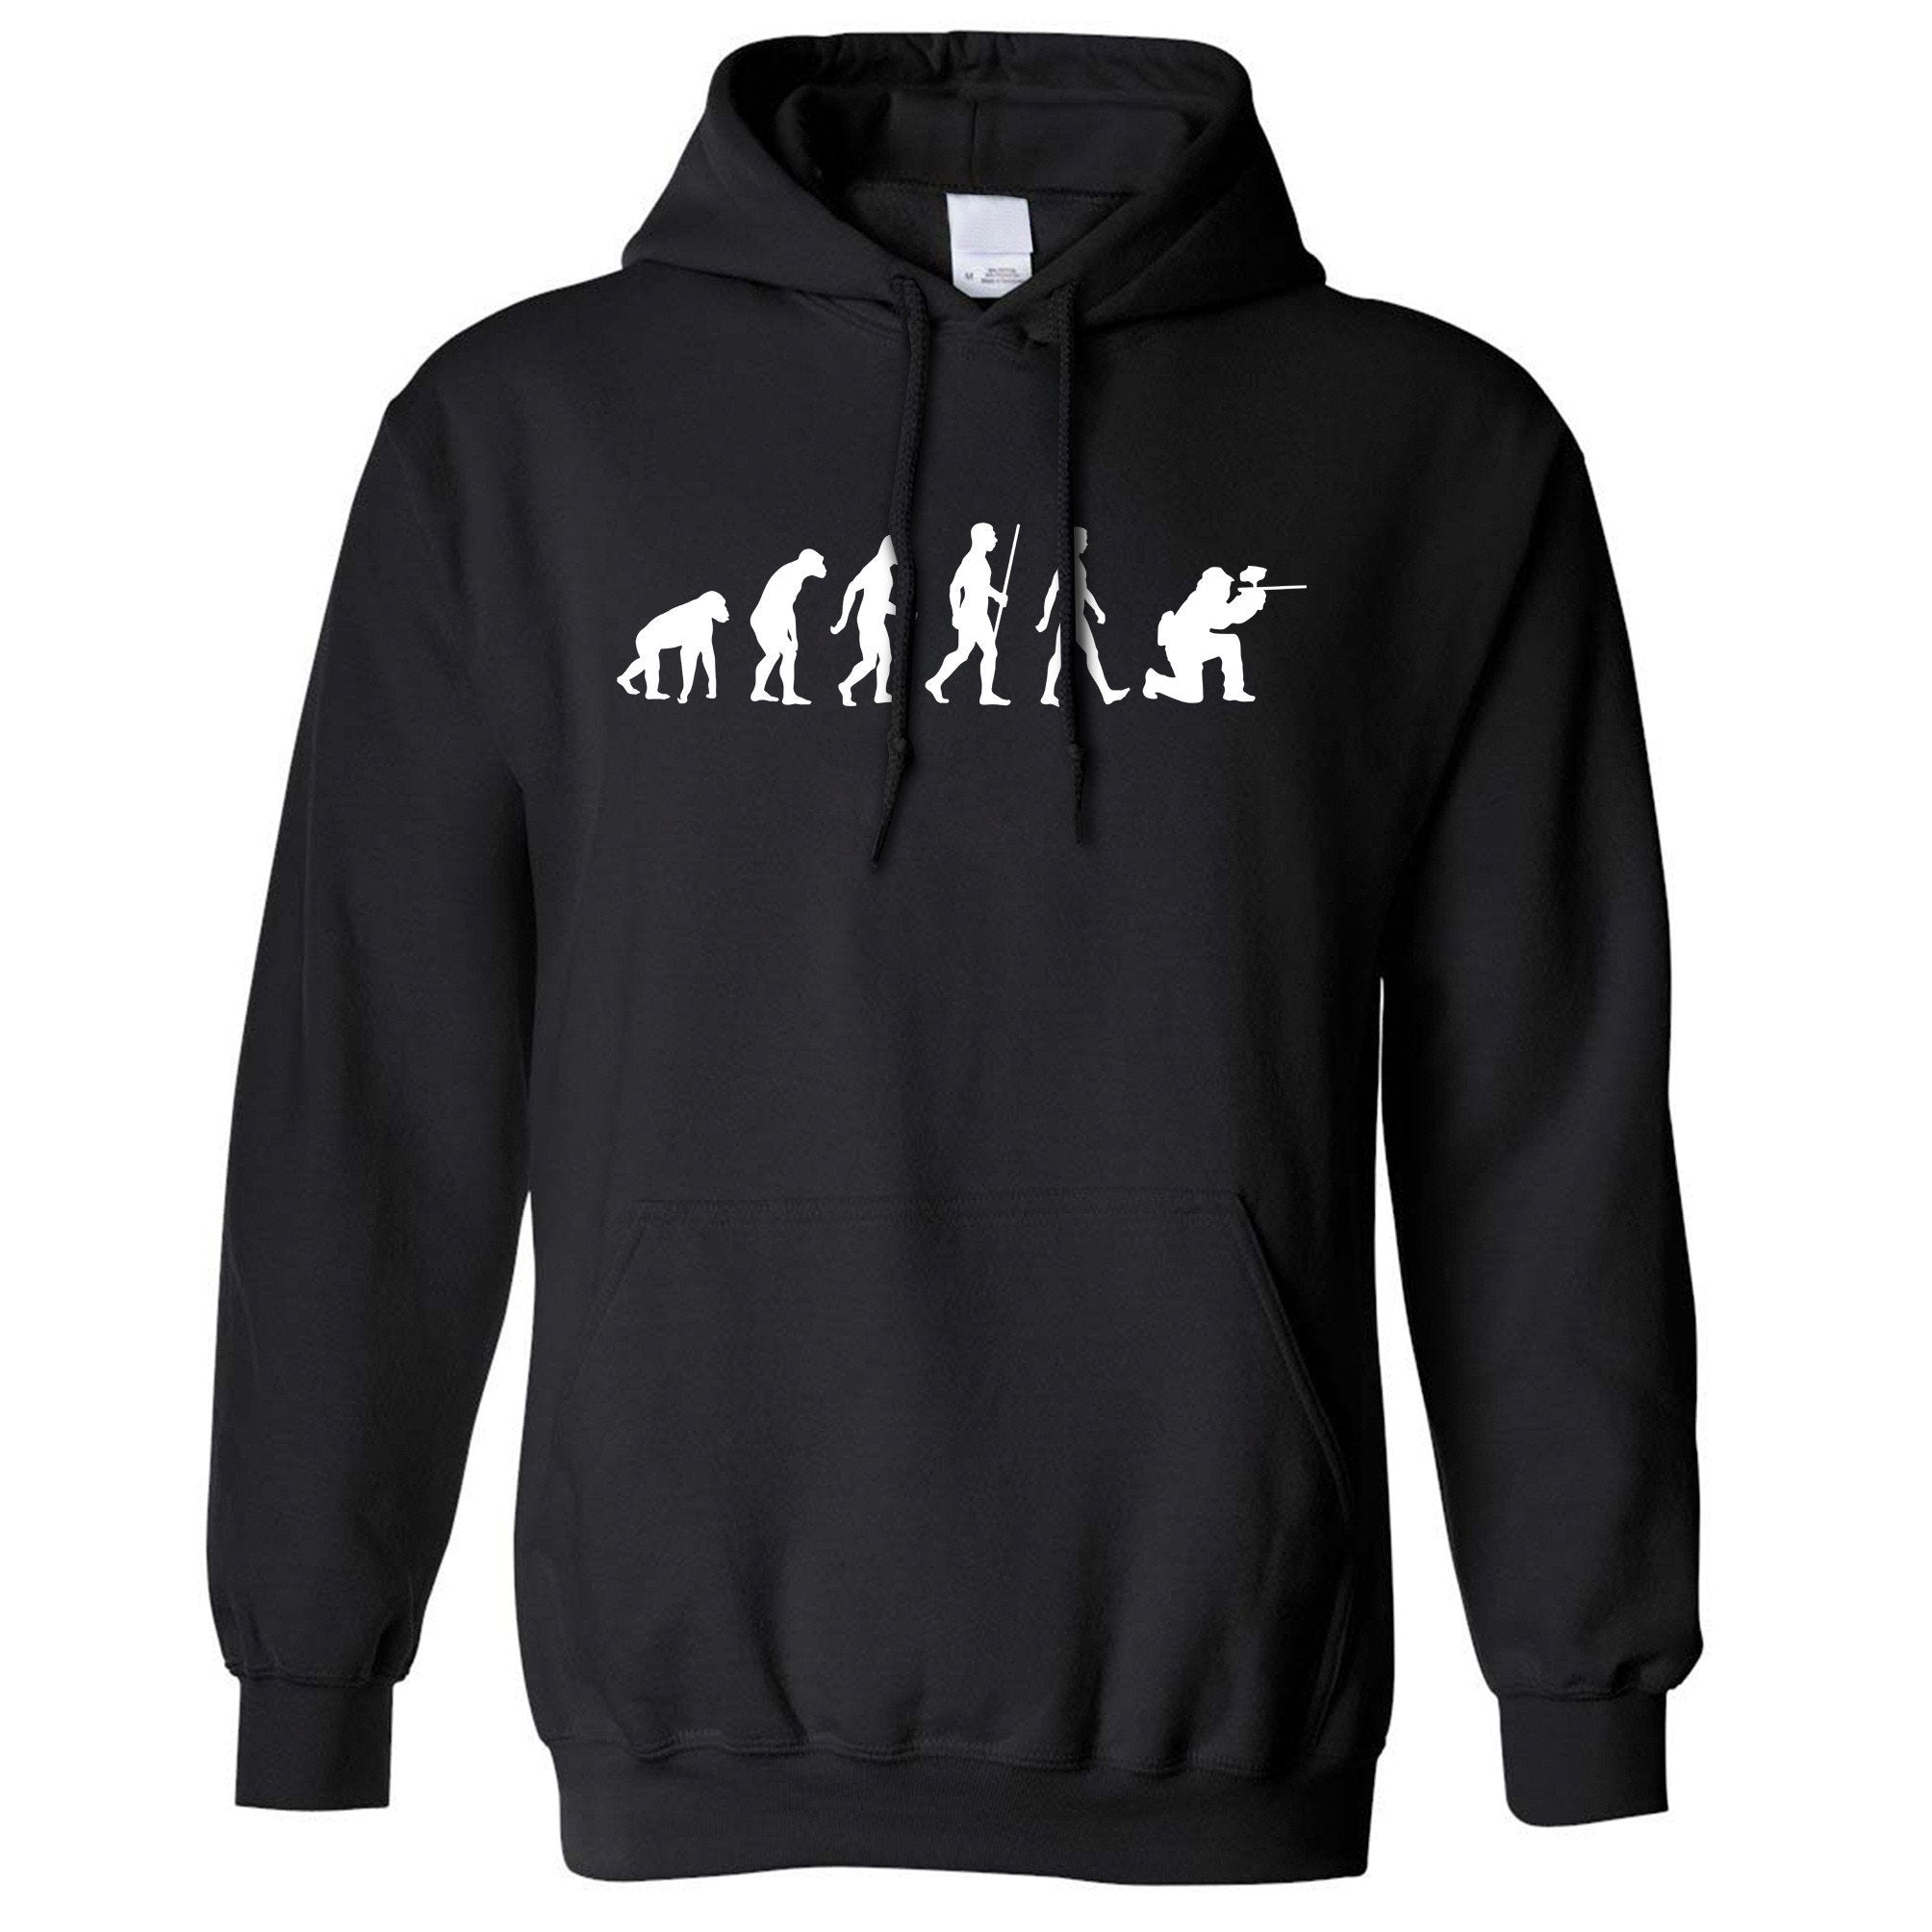 Sports Hoodie The Evolution Of A Paintballer Hooded Jumper